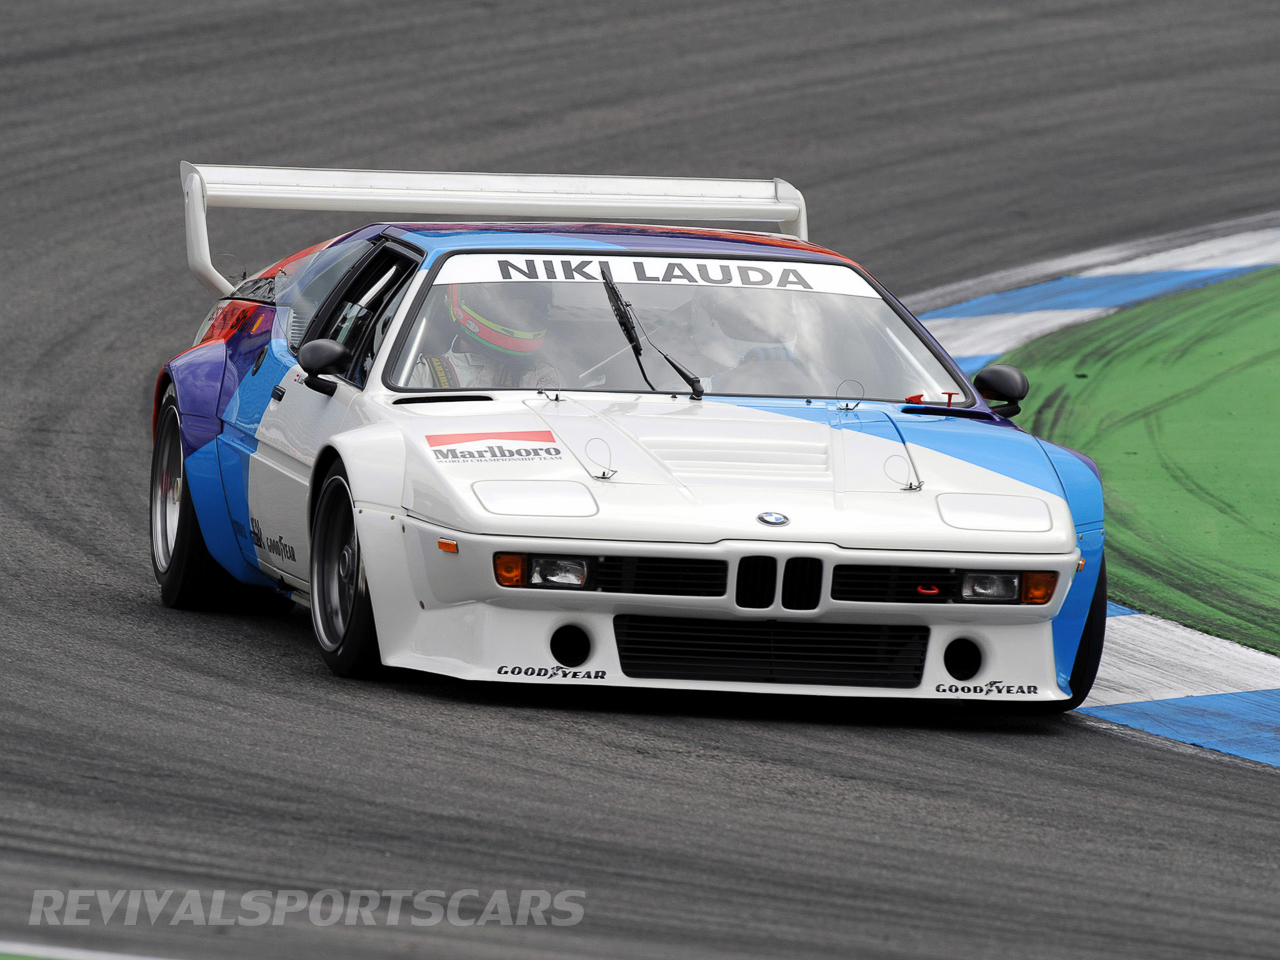 BMW M1 Supercar 1978 Lamborghini Race Car M Power Livery Pro Car